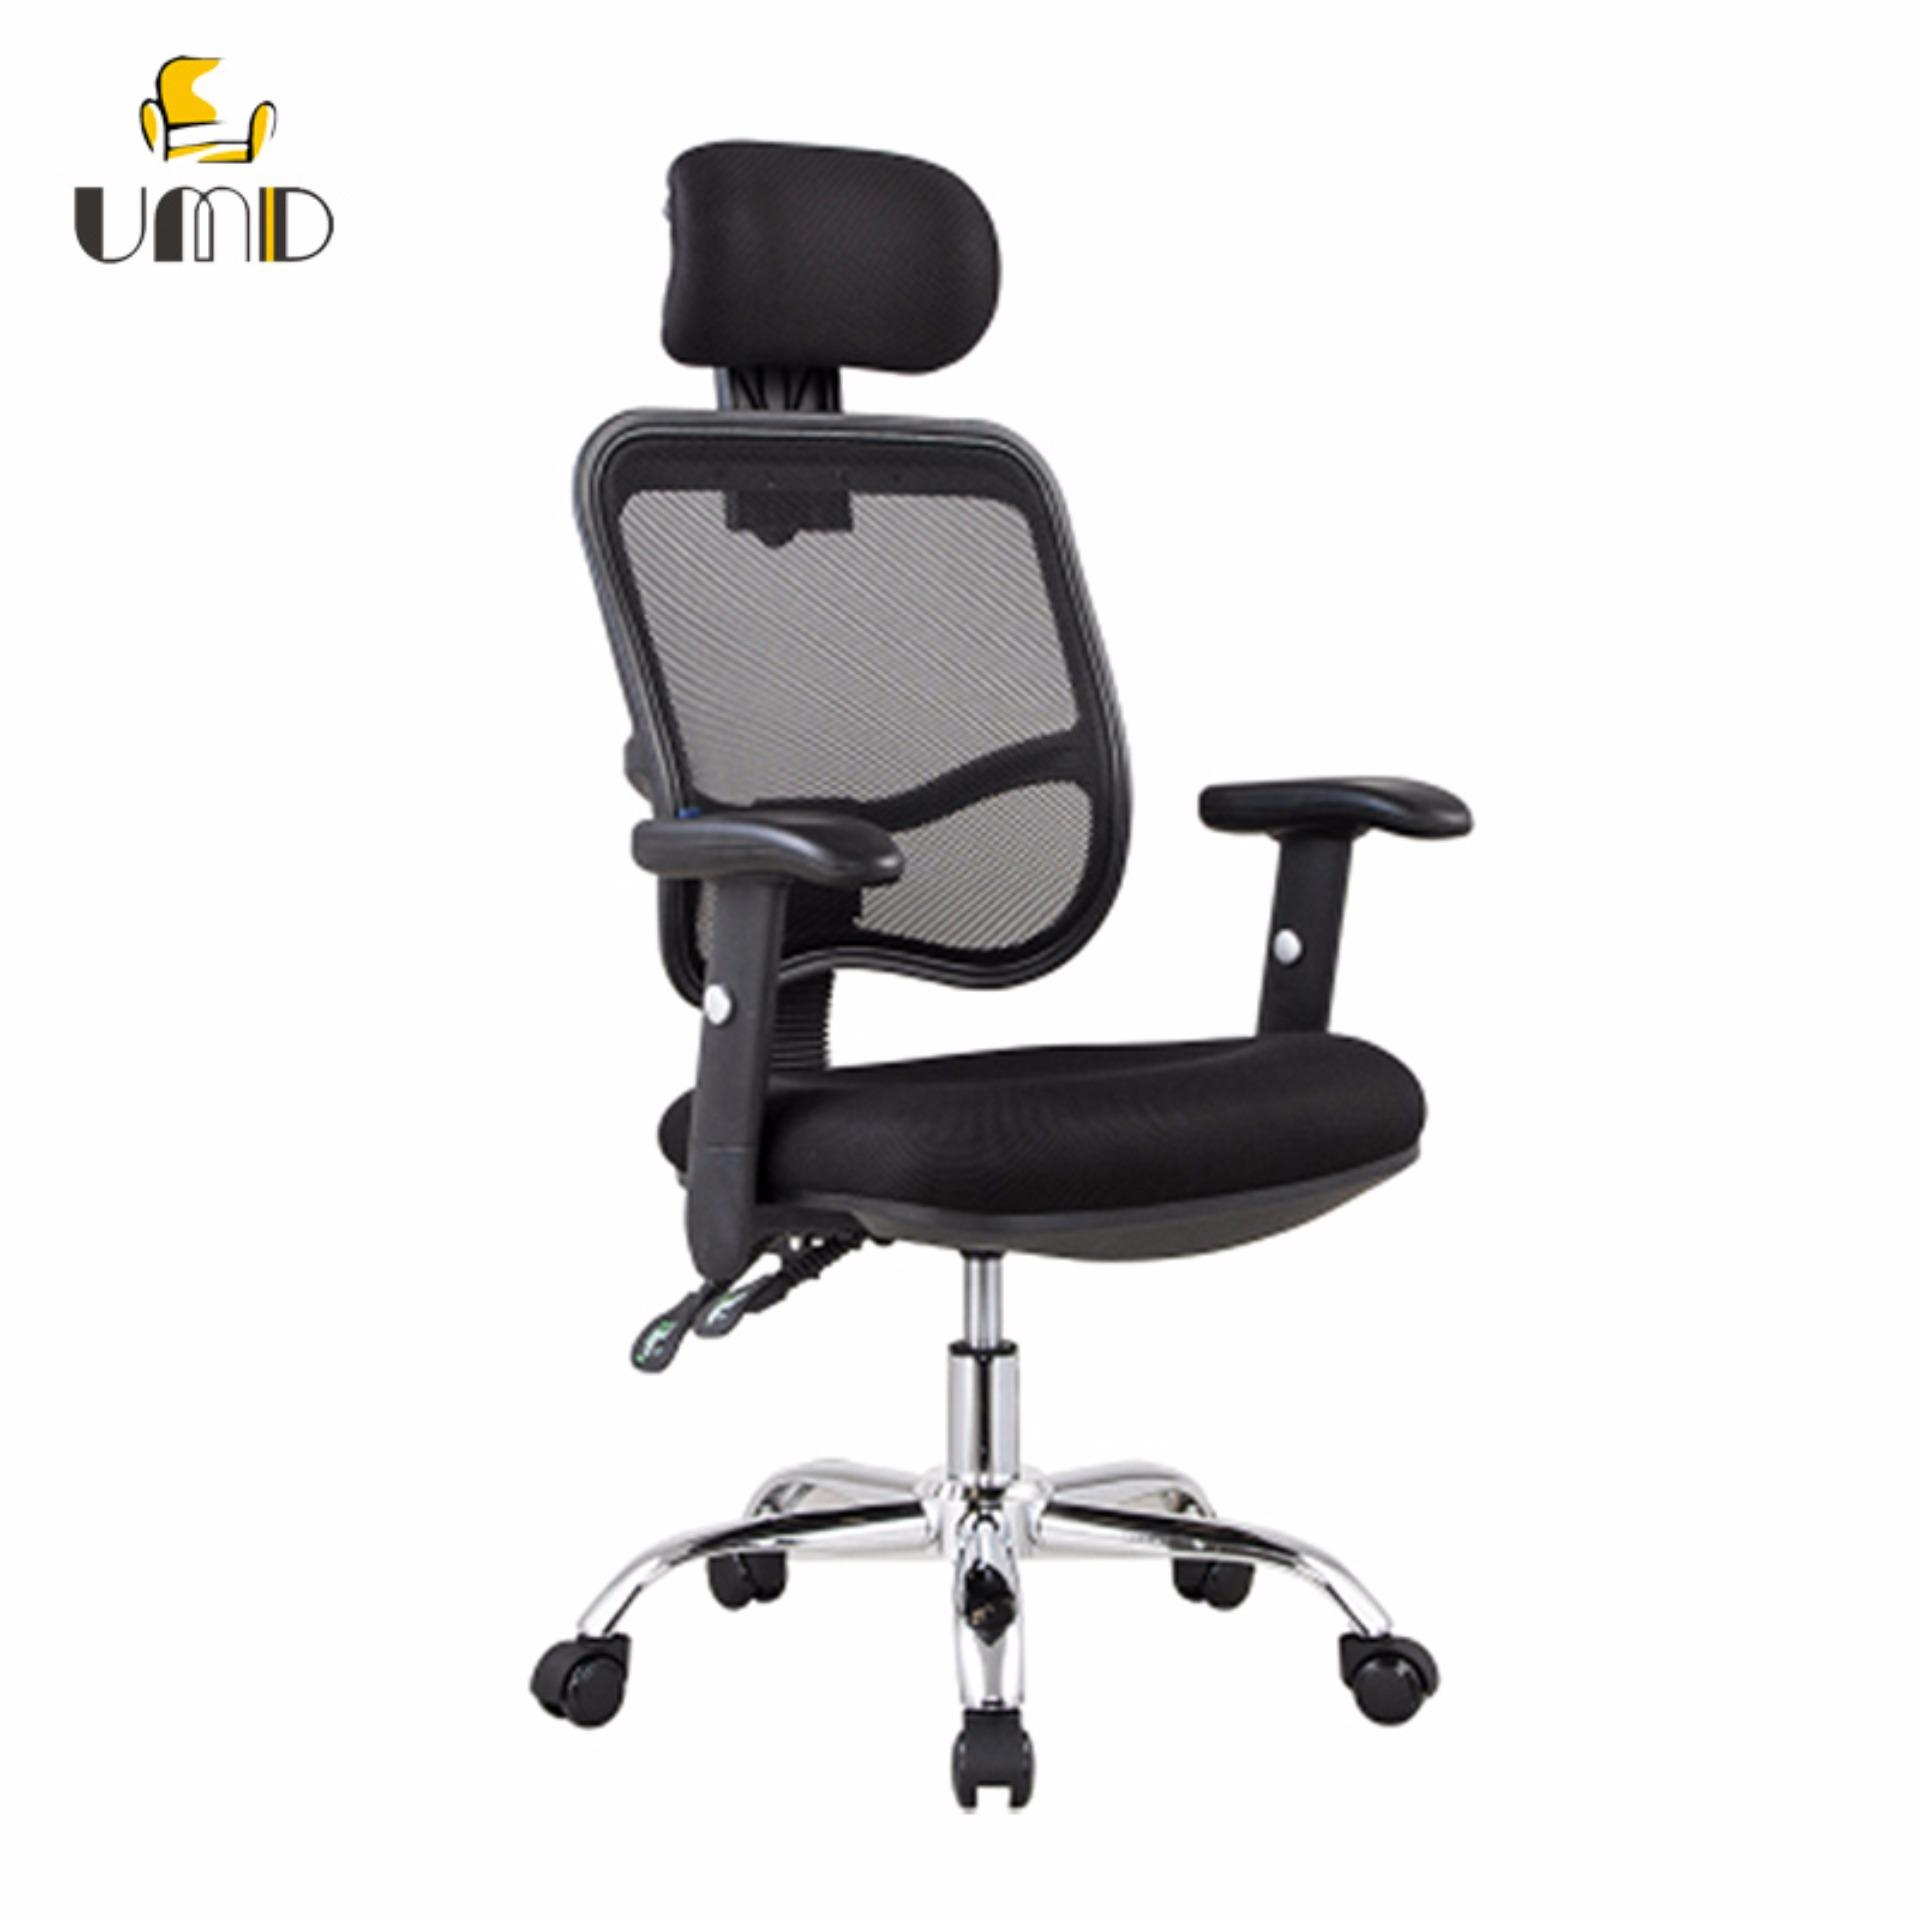 Ergonomic mesh office chair with steel base   Lazada Singapore